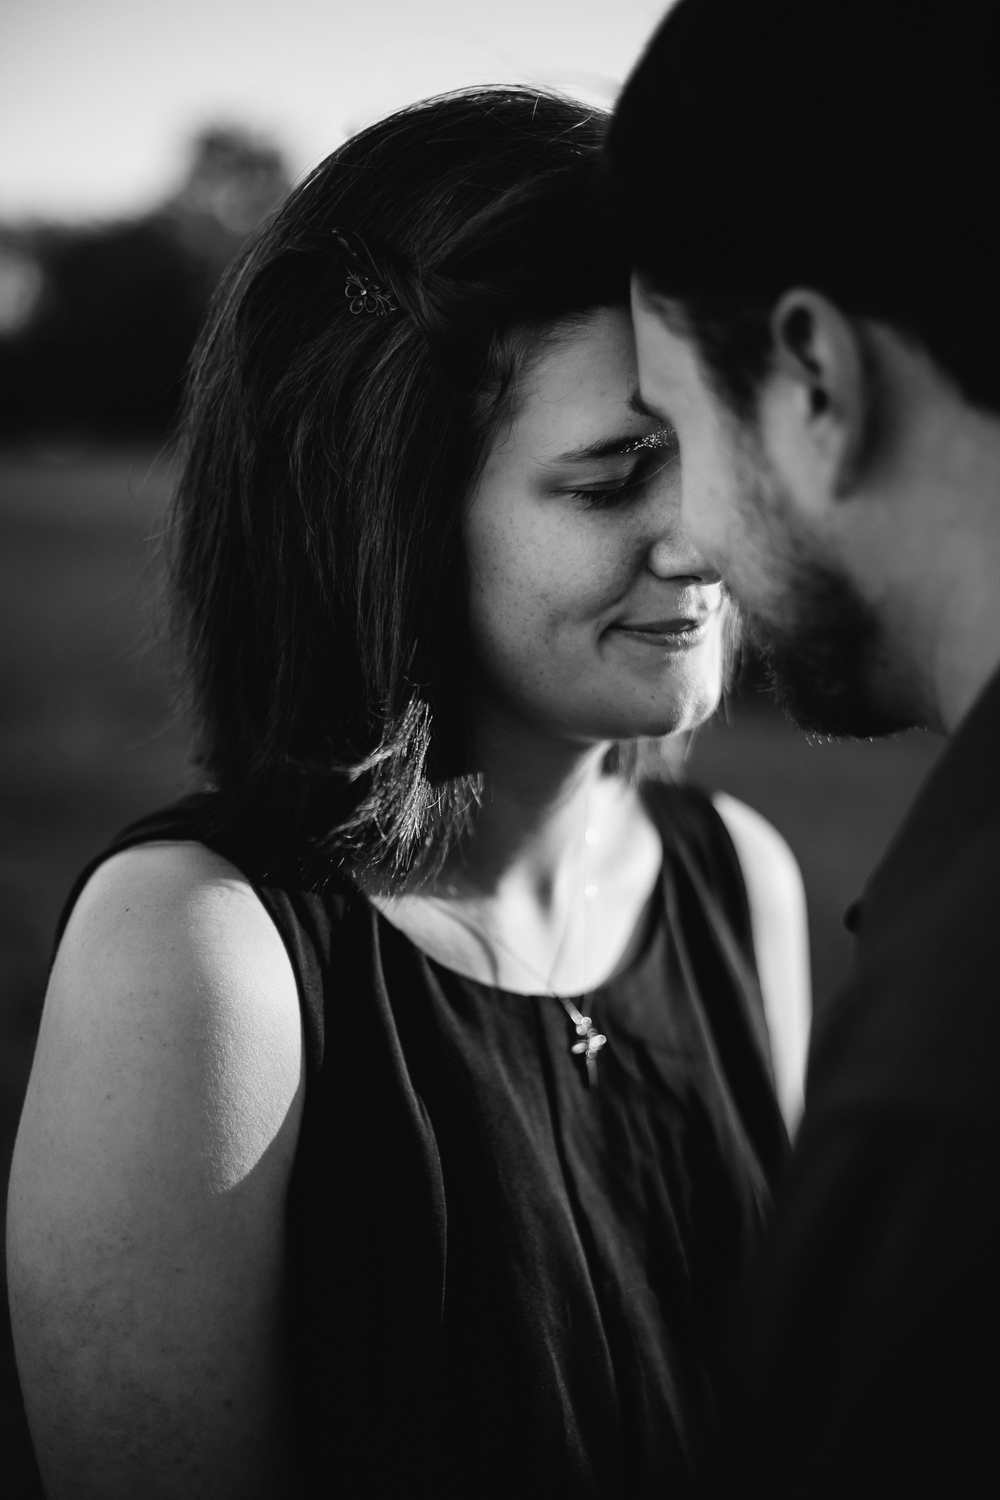 John & Kylyn Engaged - Corrie Mick Photography-31.jpg